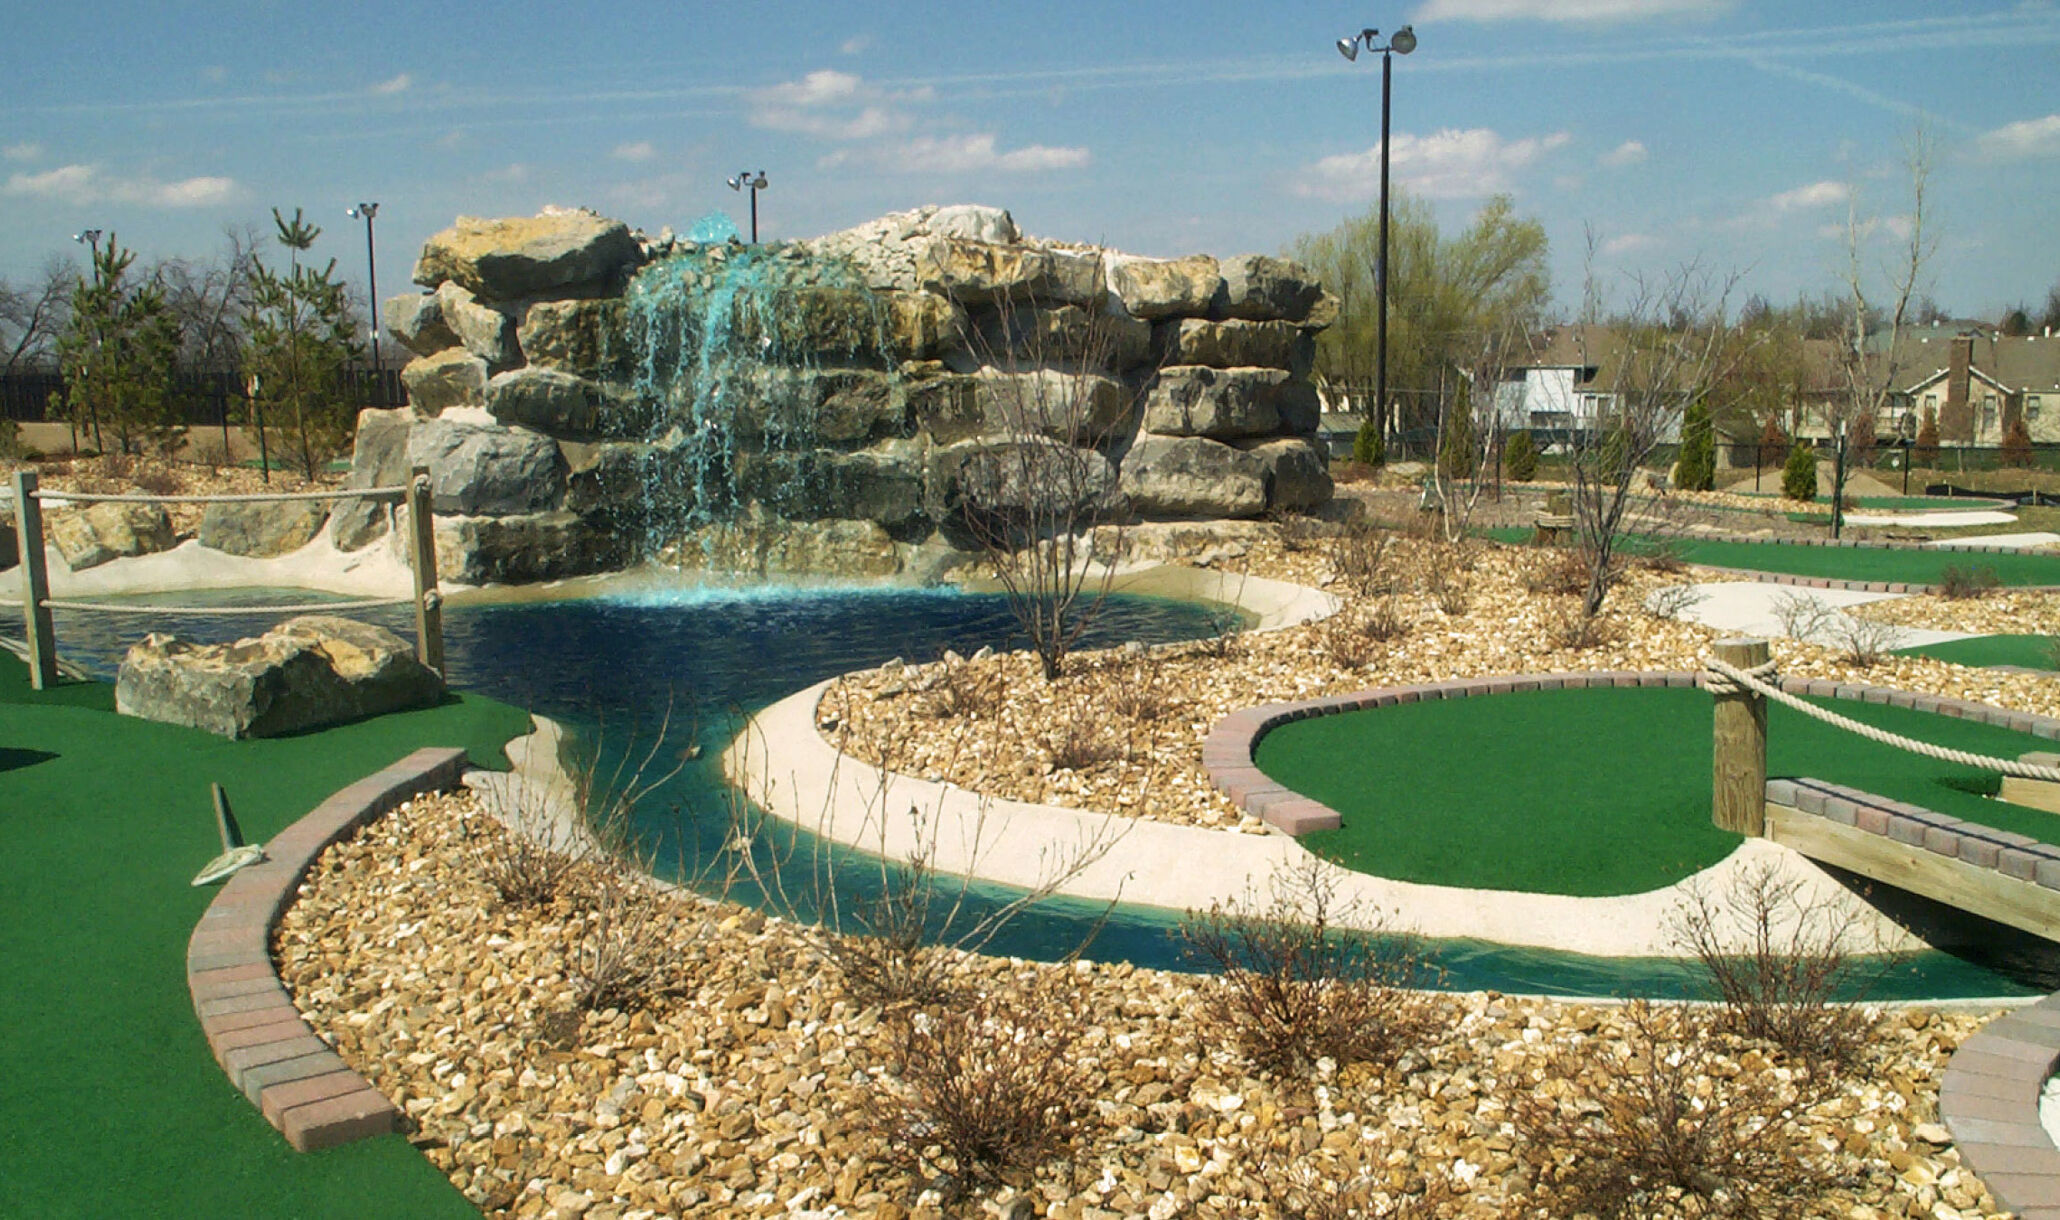 Picture of Hybrid Aarons Family Fun Center Belton Mo-3